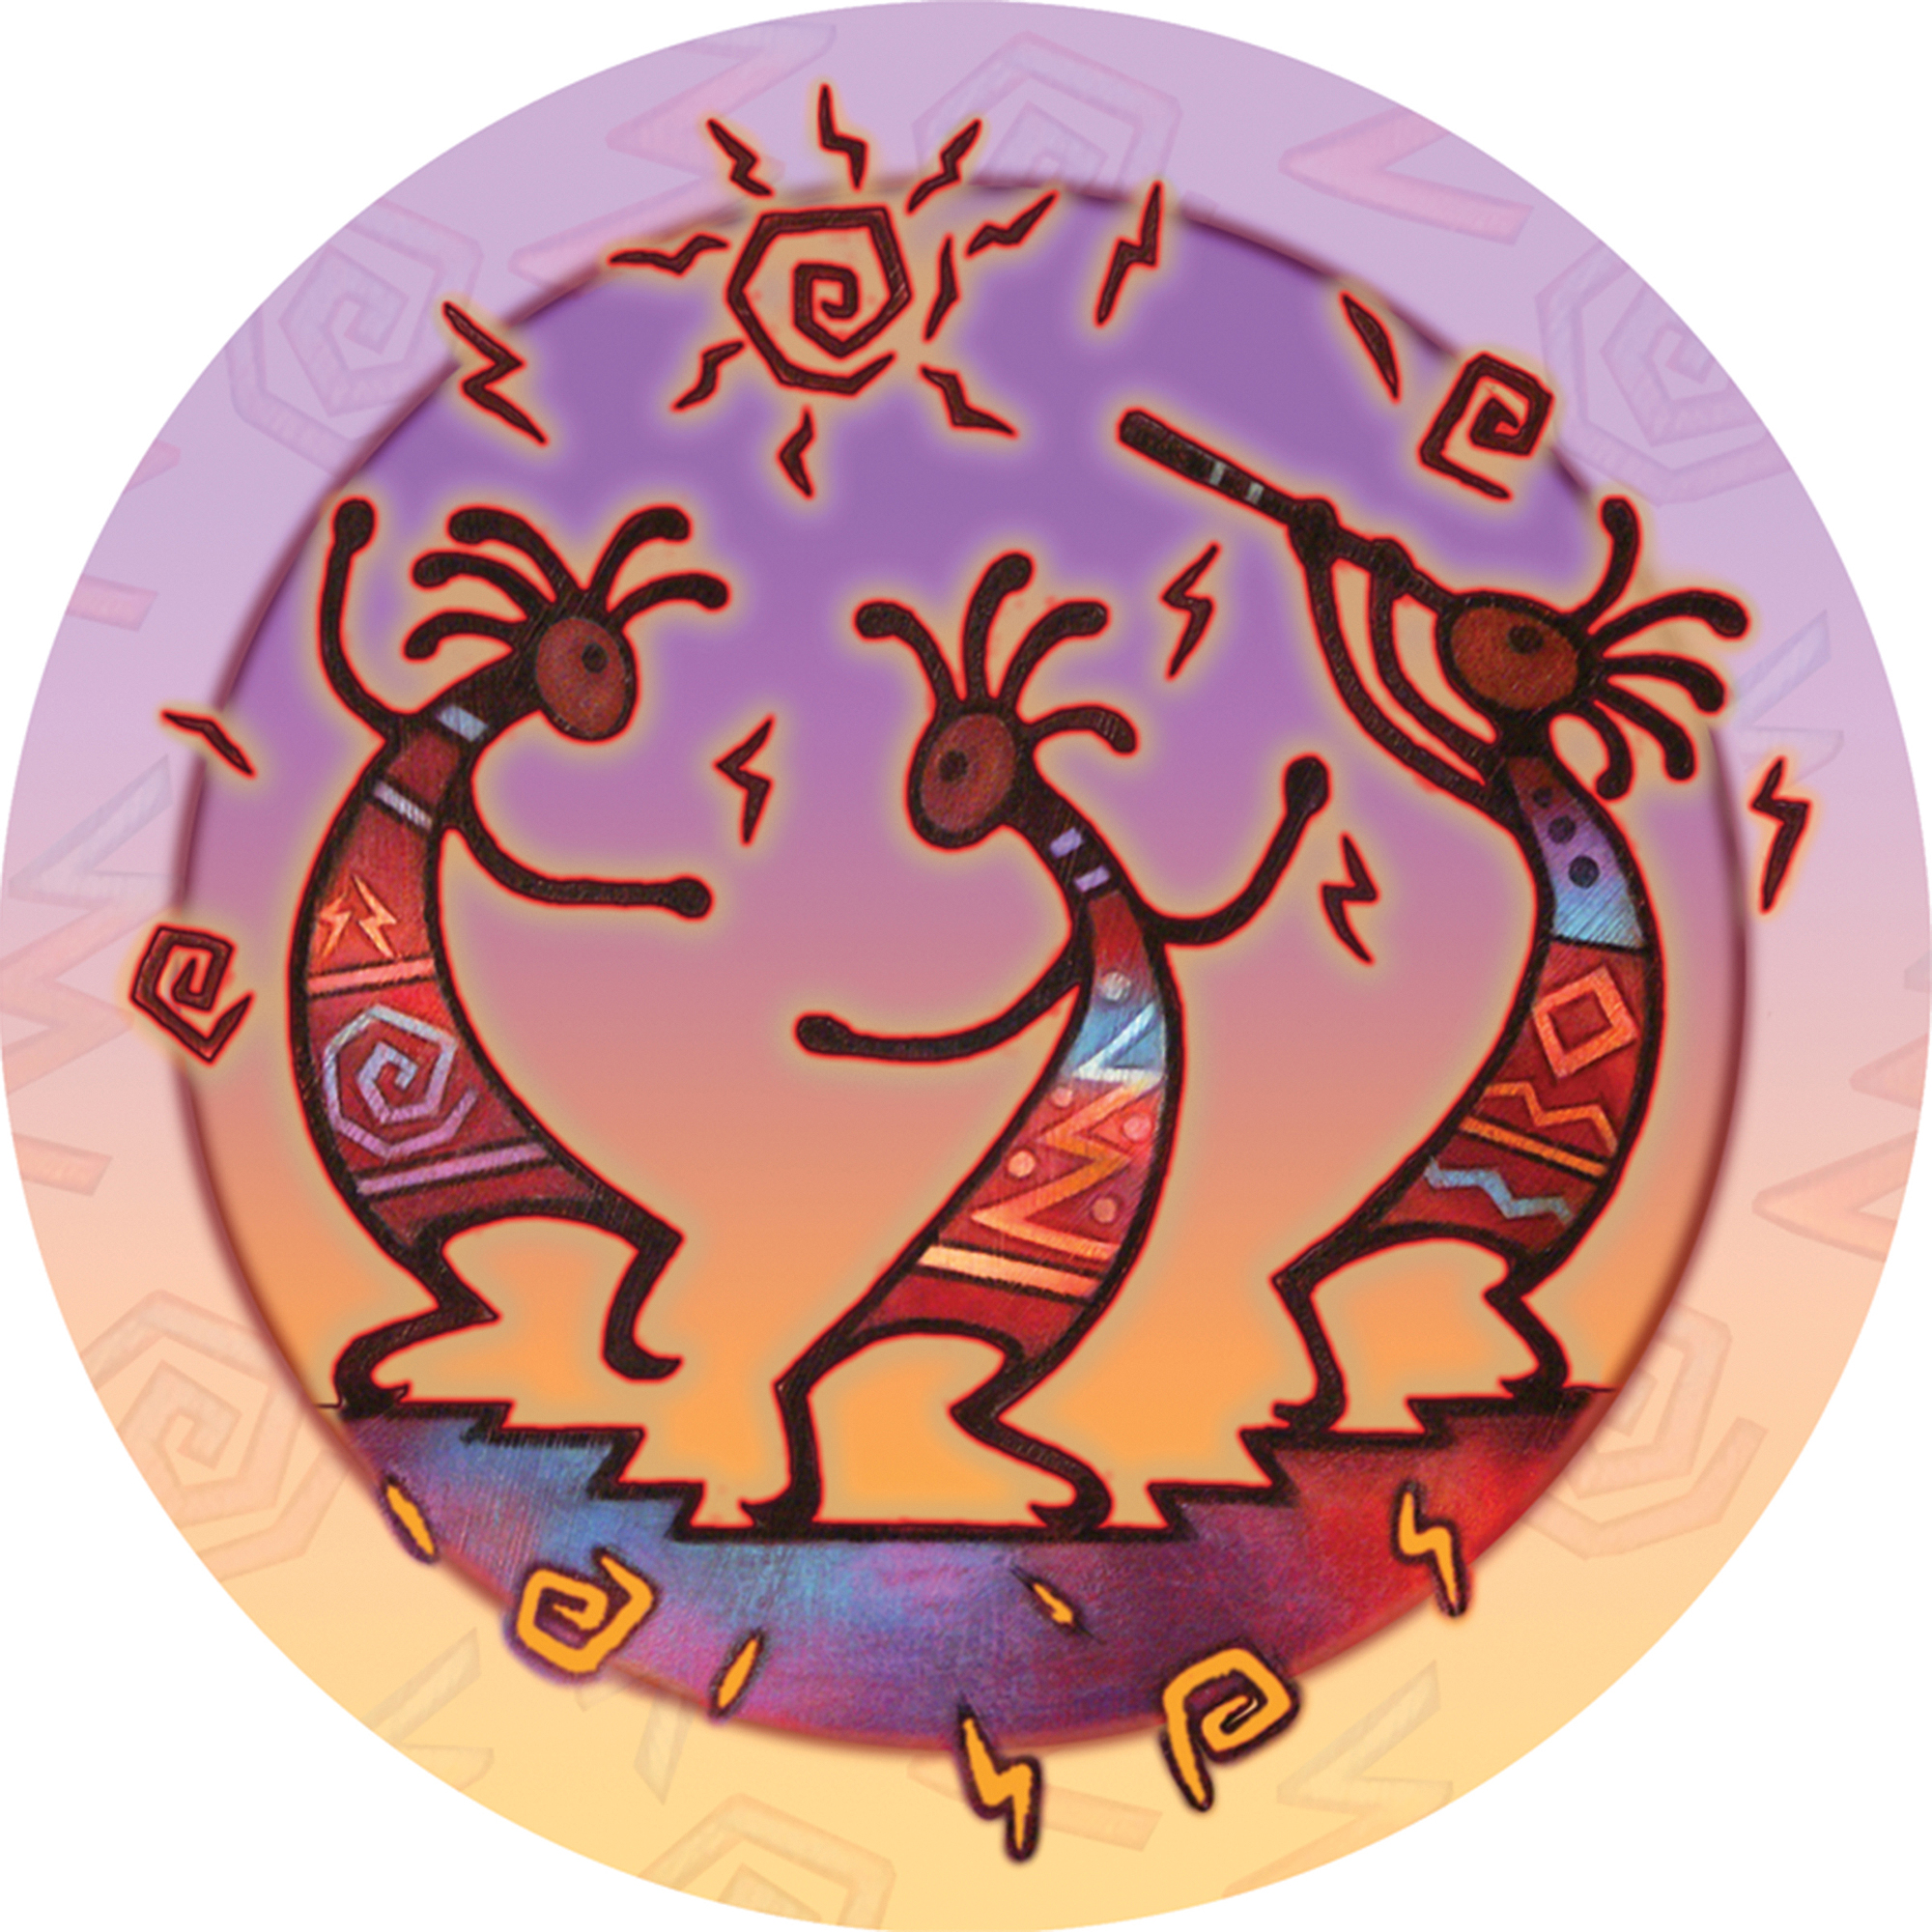 Thirstystone Occasions Drink Coasters, Kokopelli Dance